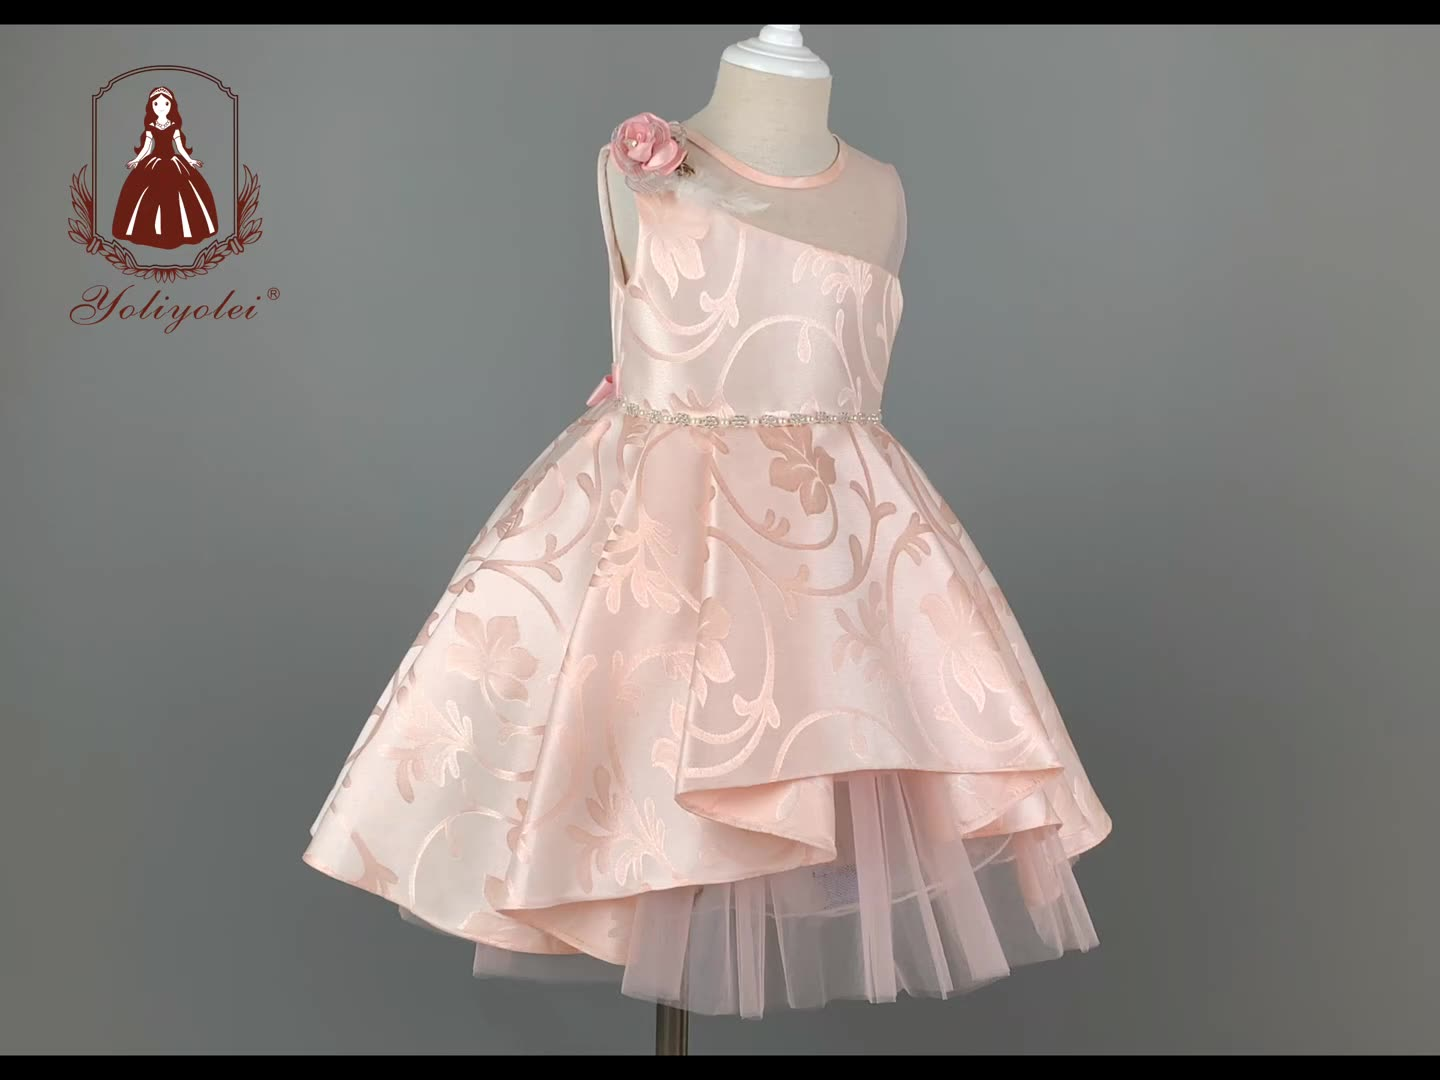 Yoliyolei New model party children clothes girls dresses